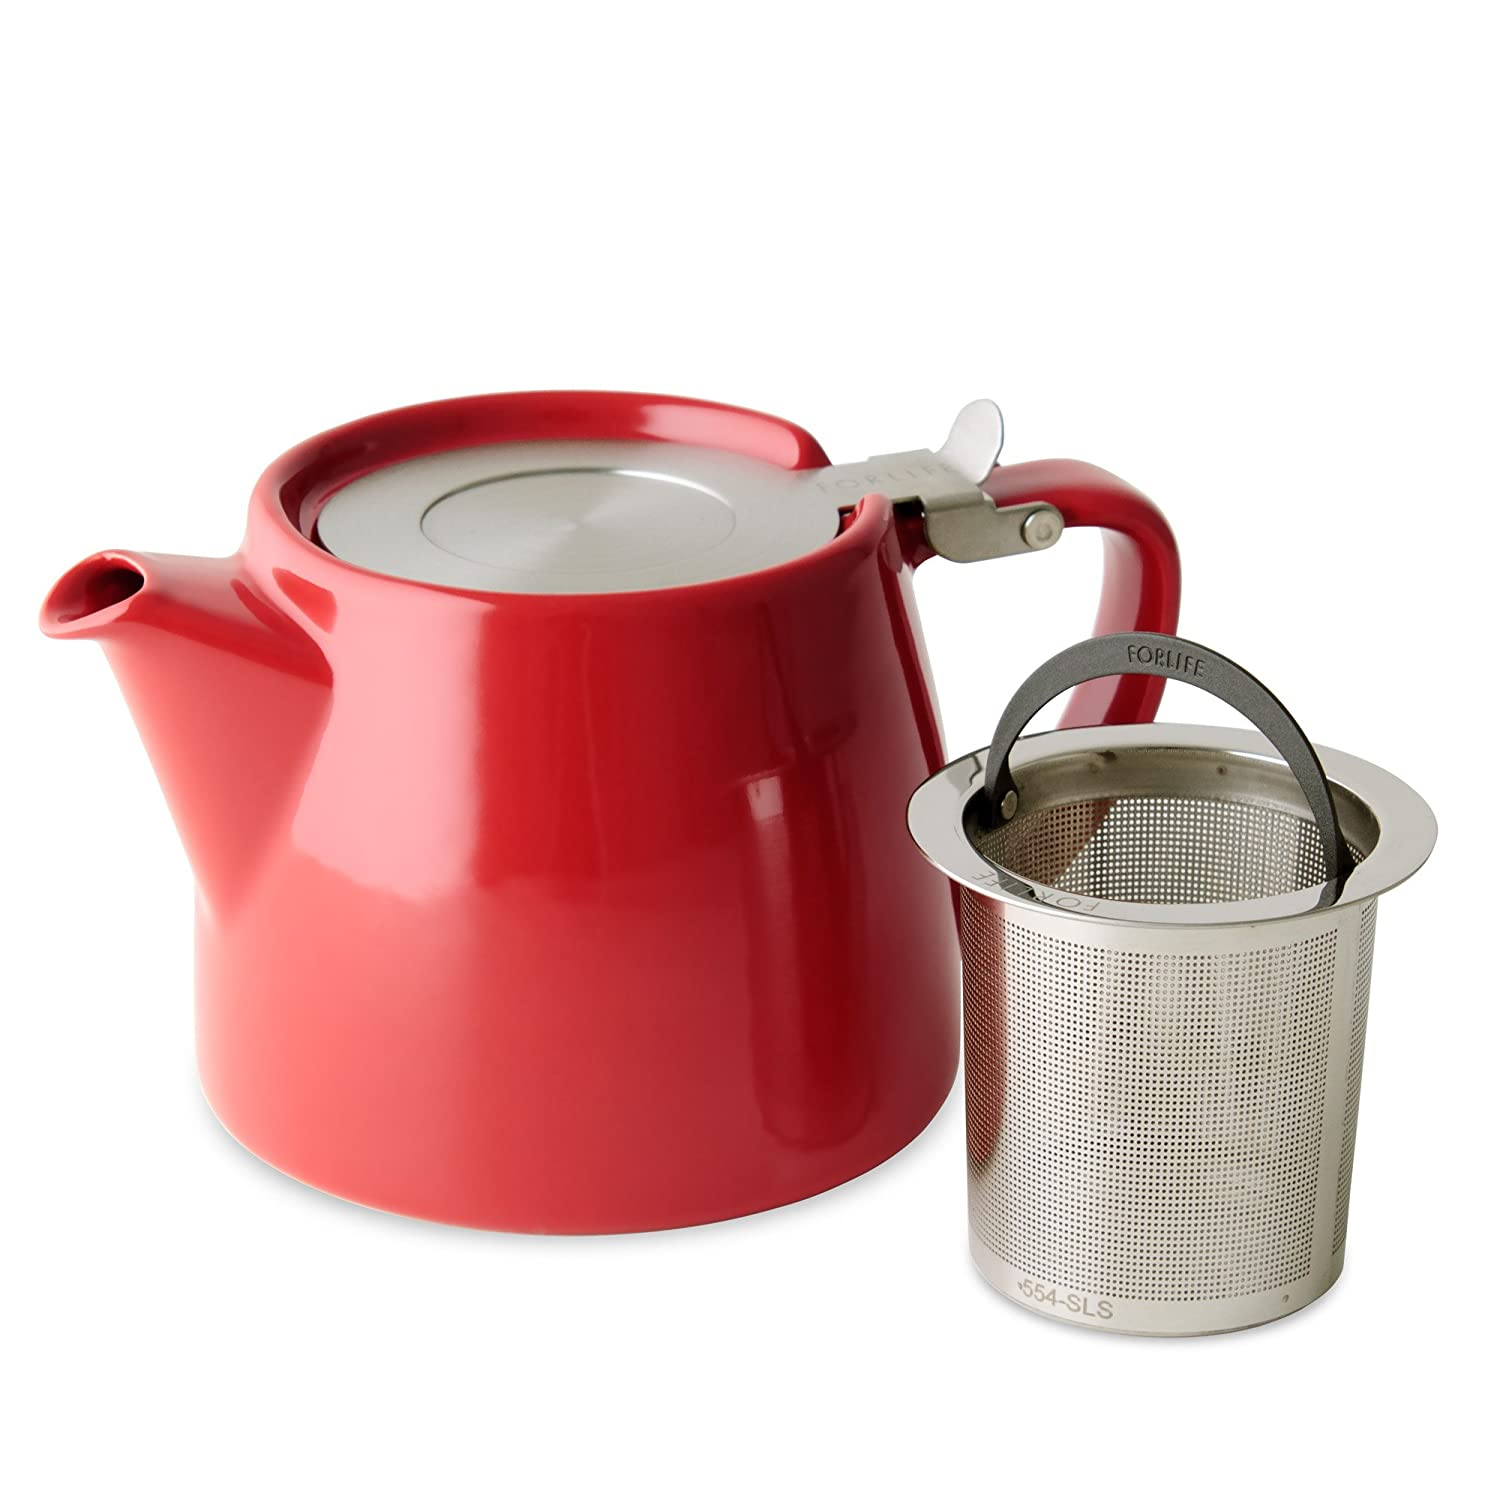 FORLIFE Stump Teapot with SLS Lid and Infuser, 18-Ounce, Red